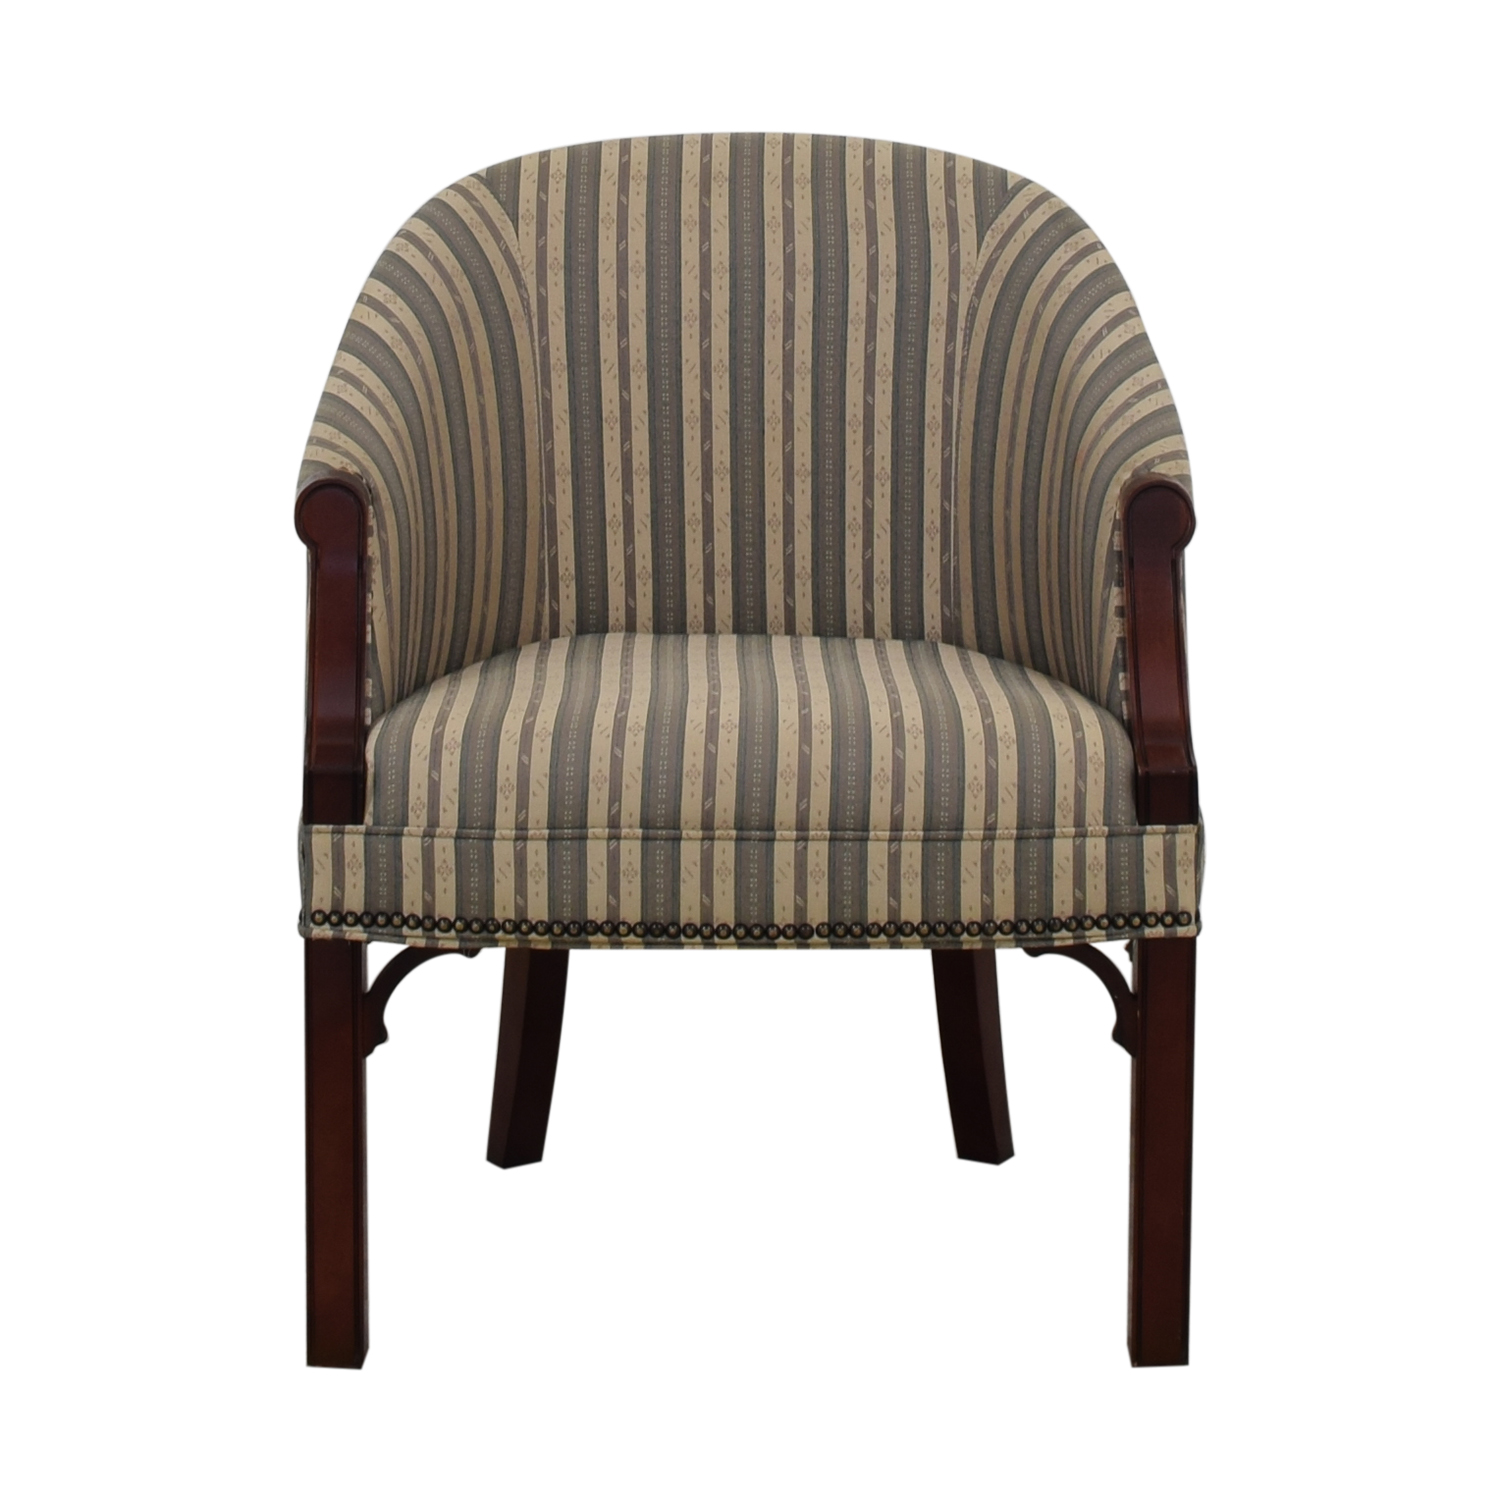 Kimball Independence Newcastle Striped Chair sale